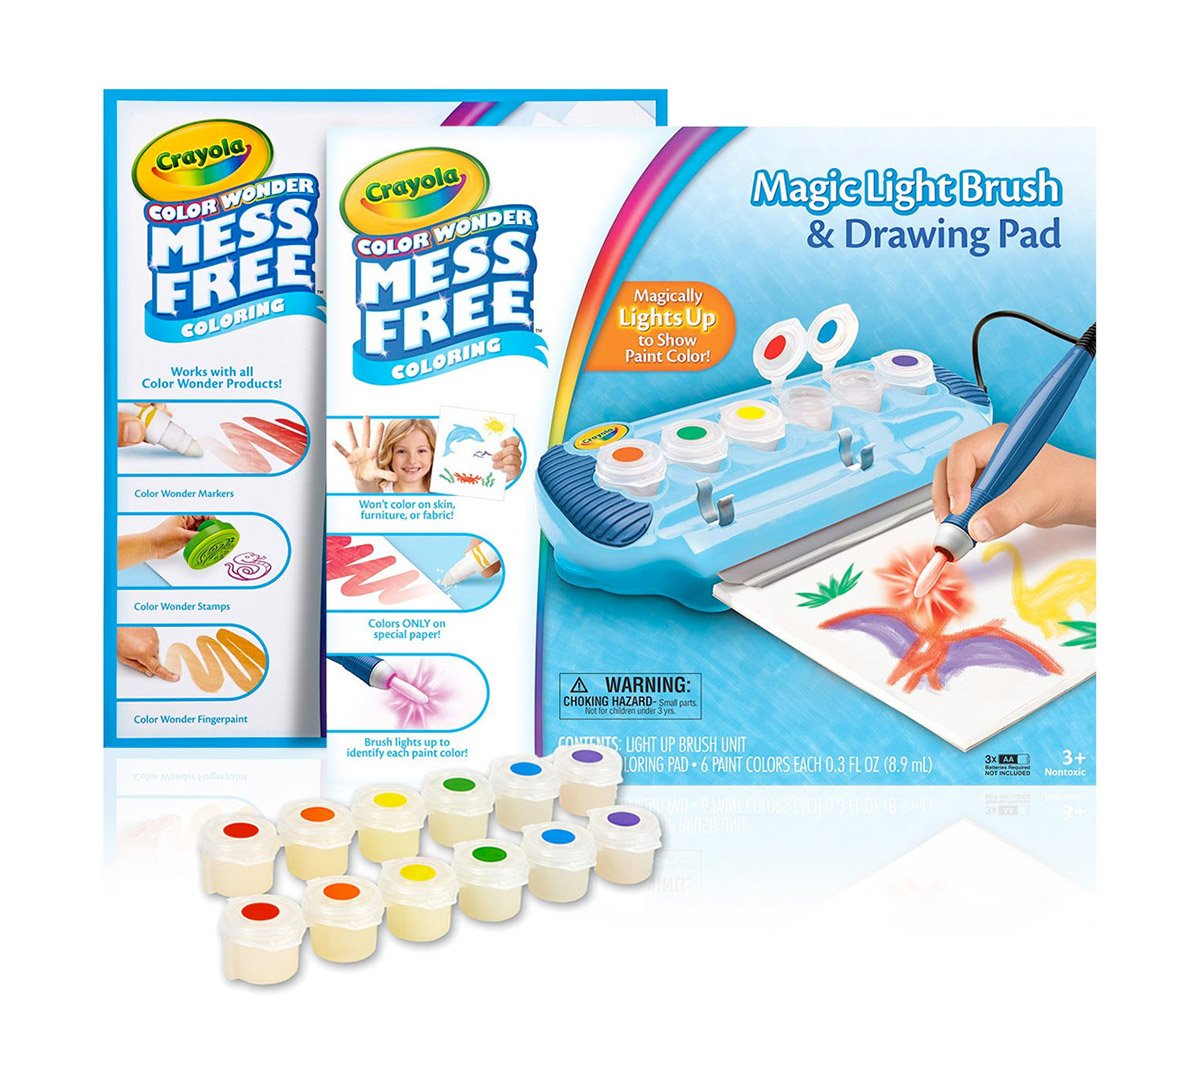 Crayola Color Wonder Magic Light Brush & Drawing Pad, Mess Free Coloring, Ages 3, 4, 5